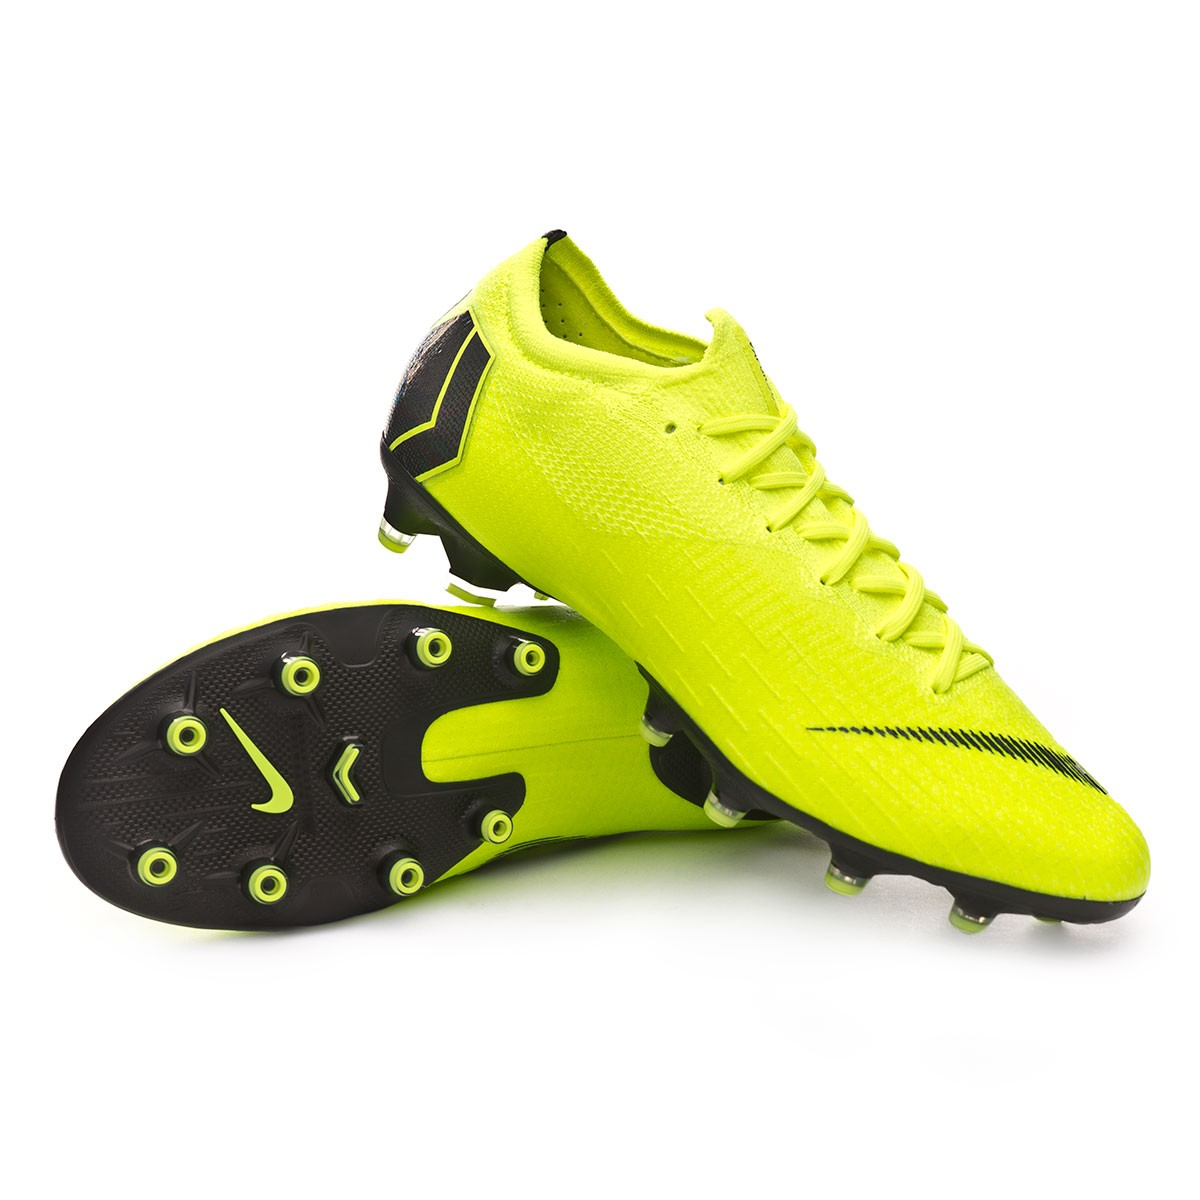 vast selection new lifestyle top design Nike Mercurial Vapor XII Elite AG-Pro Football Boots